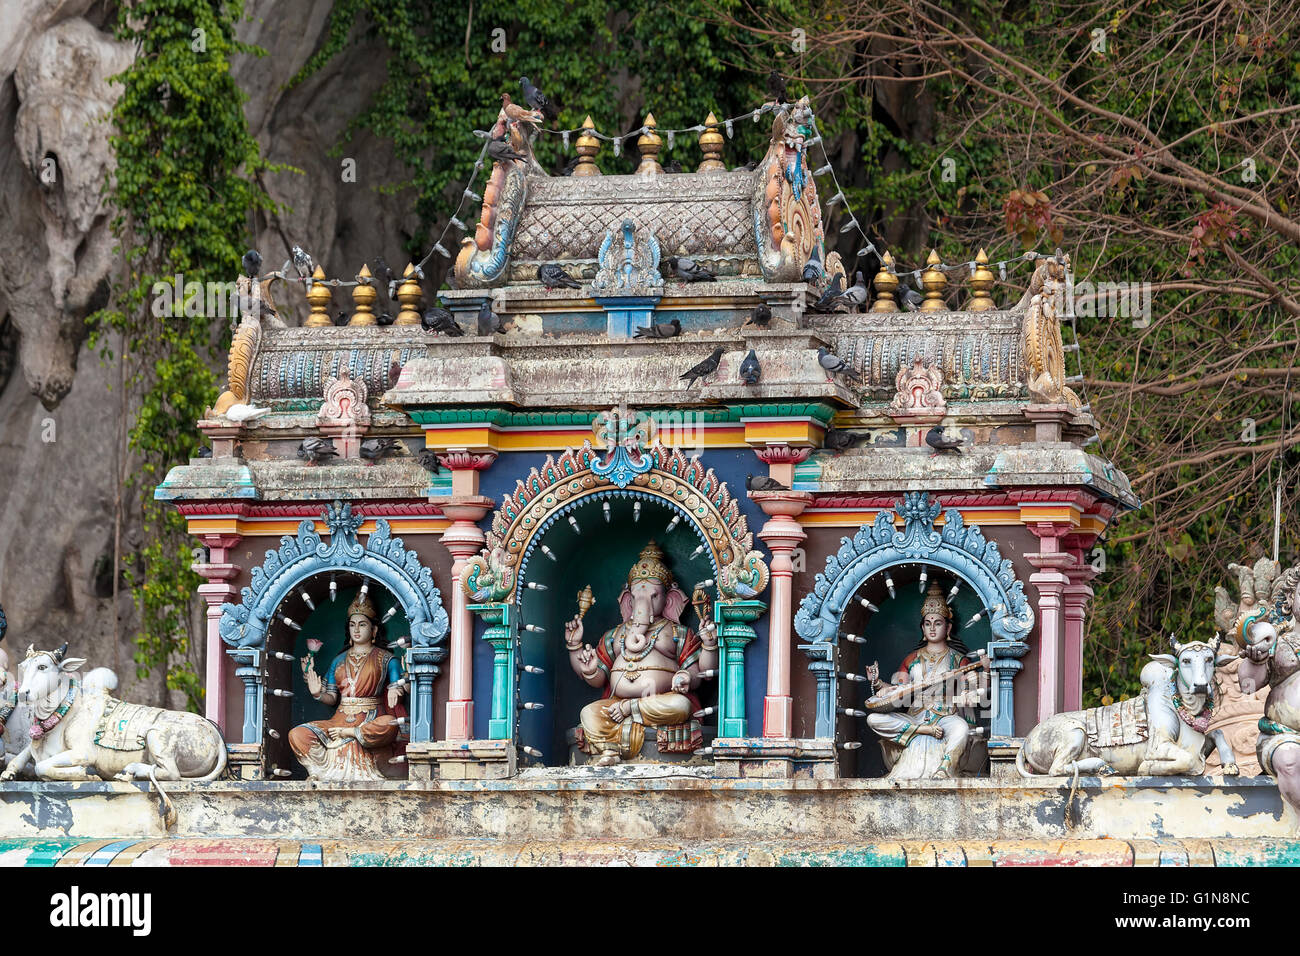 Hindu Deities with Ganesh Sculptures Architectural detail at entrance to Batu Caves - Stock Image